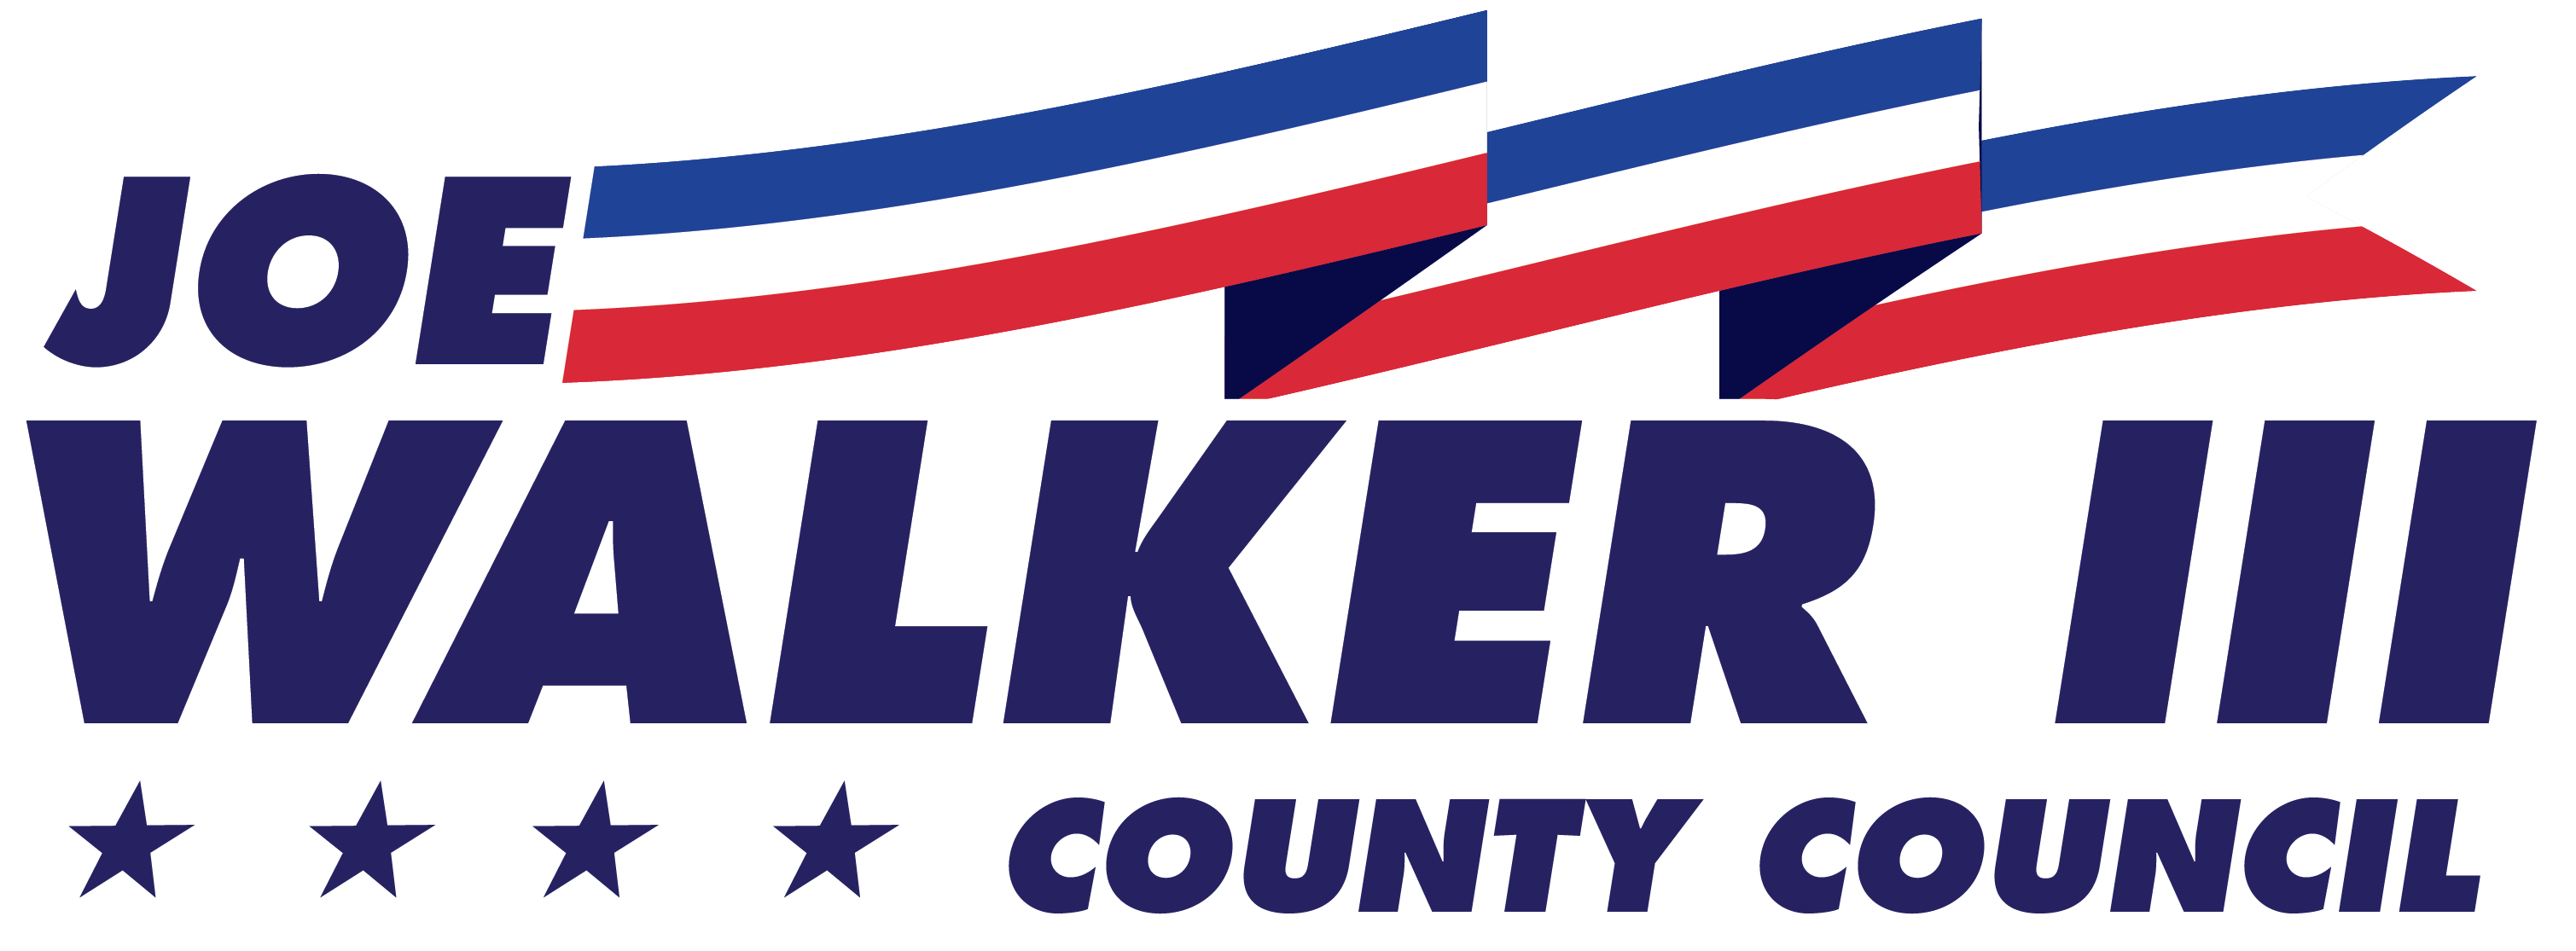 Joe Walker for Council